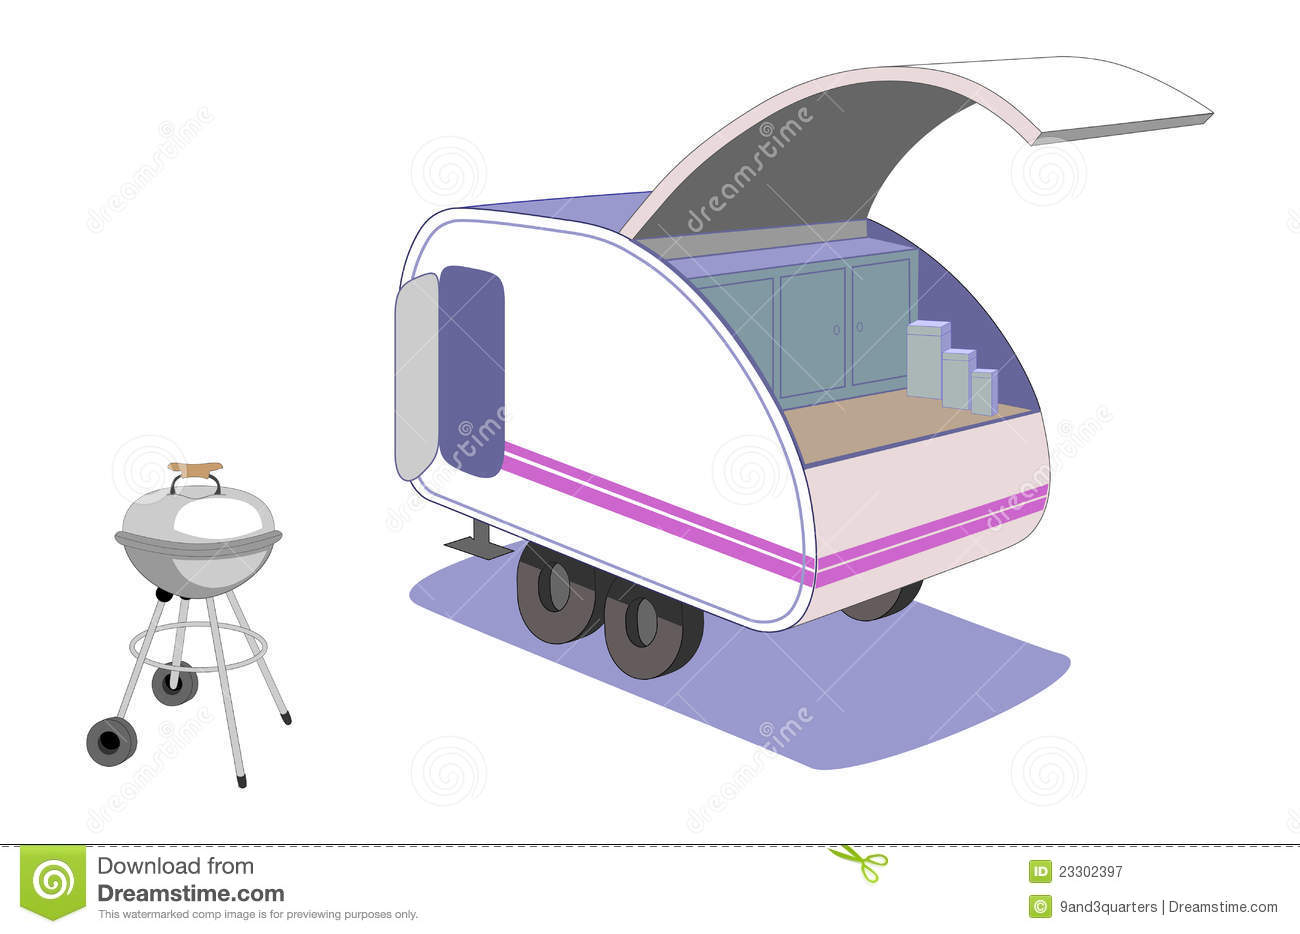 Teardrop Trailer And Cool Retro Grill Parked Ready To Cook Supper This Tiny